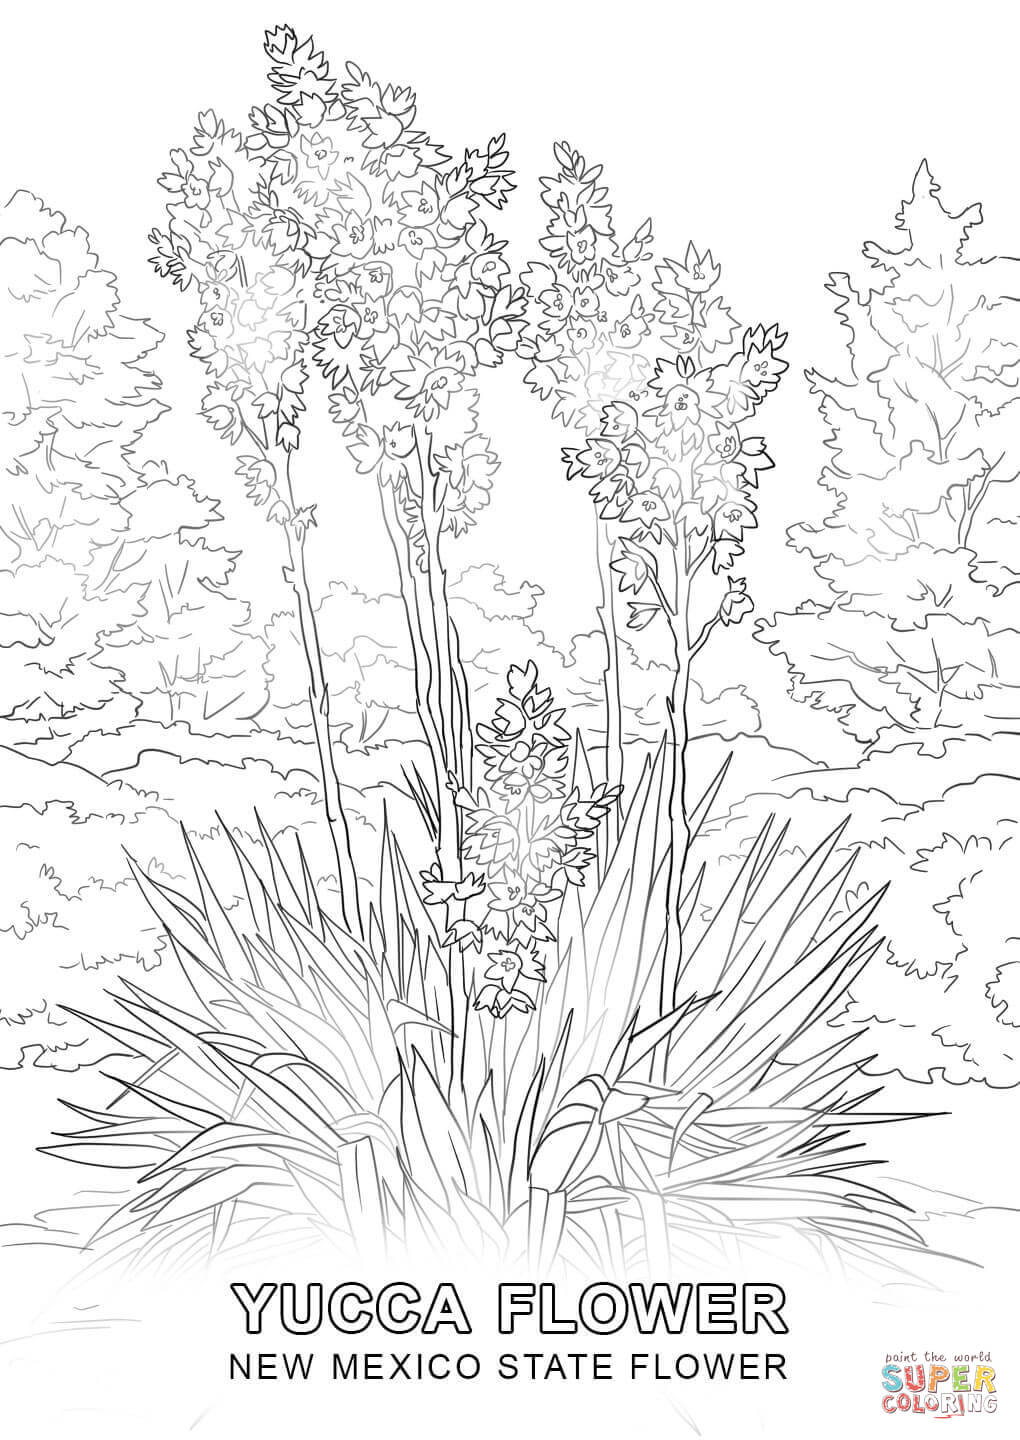 new mexico state flower 50 state flowers coloring pages for kids mexico flower new state